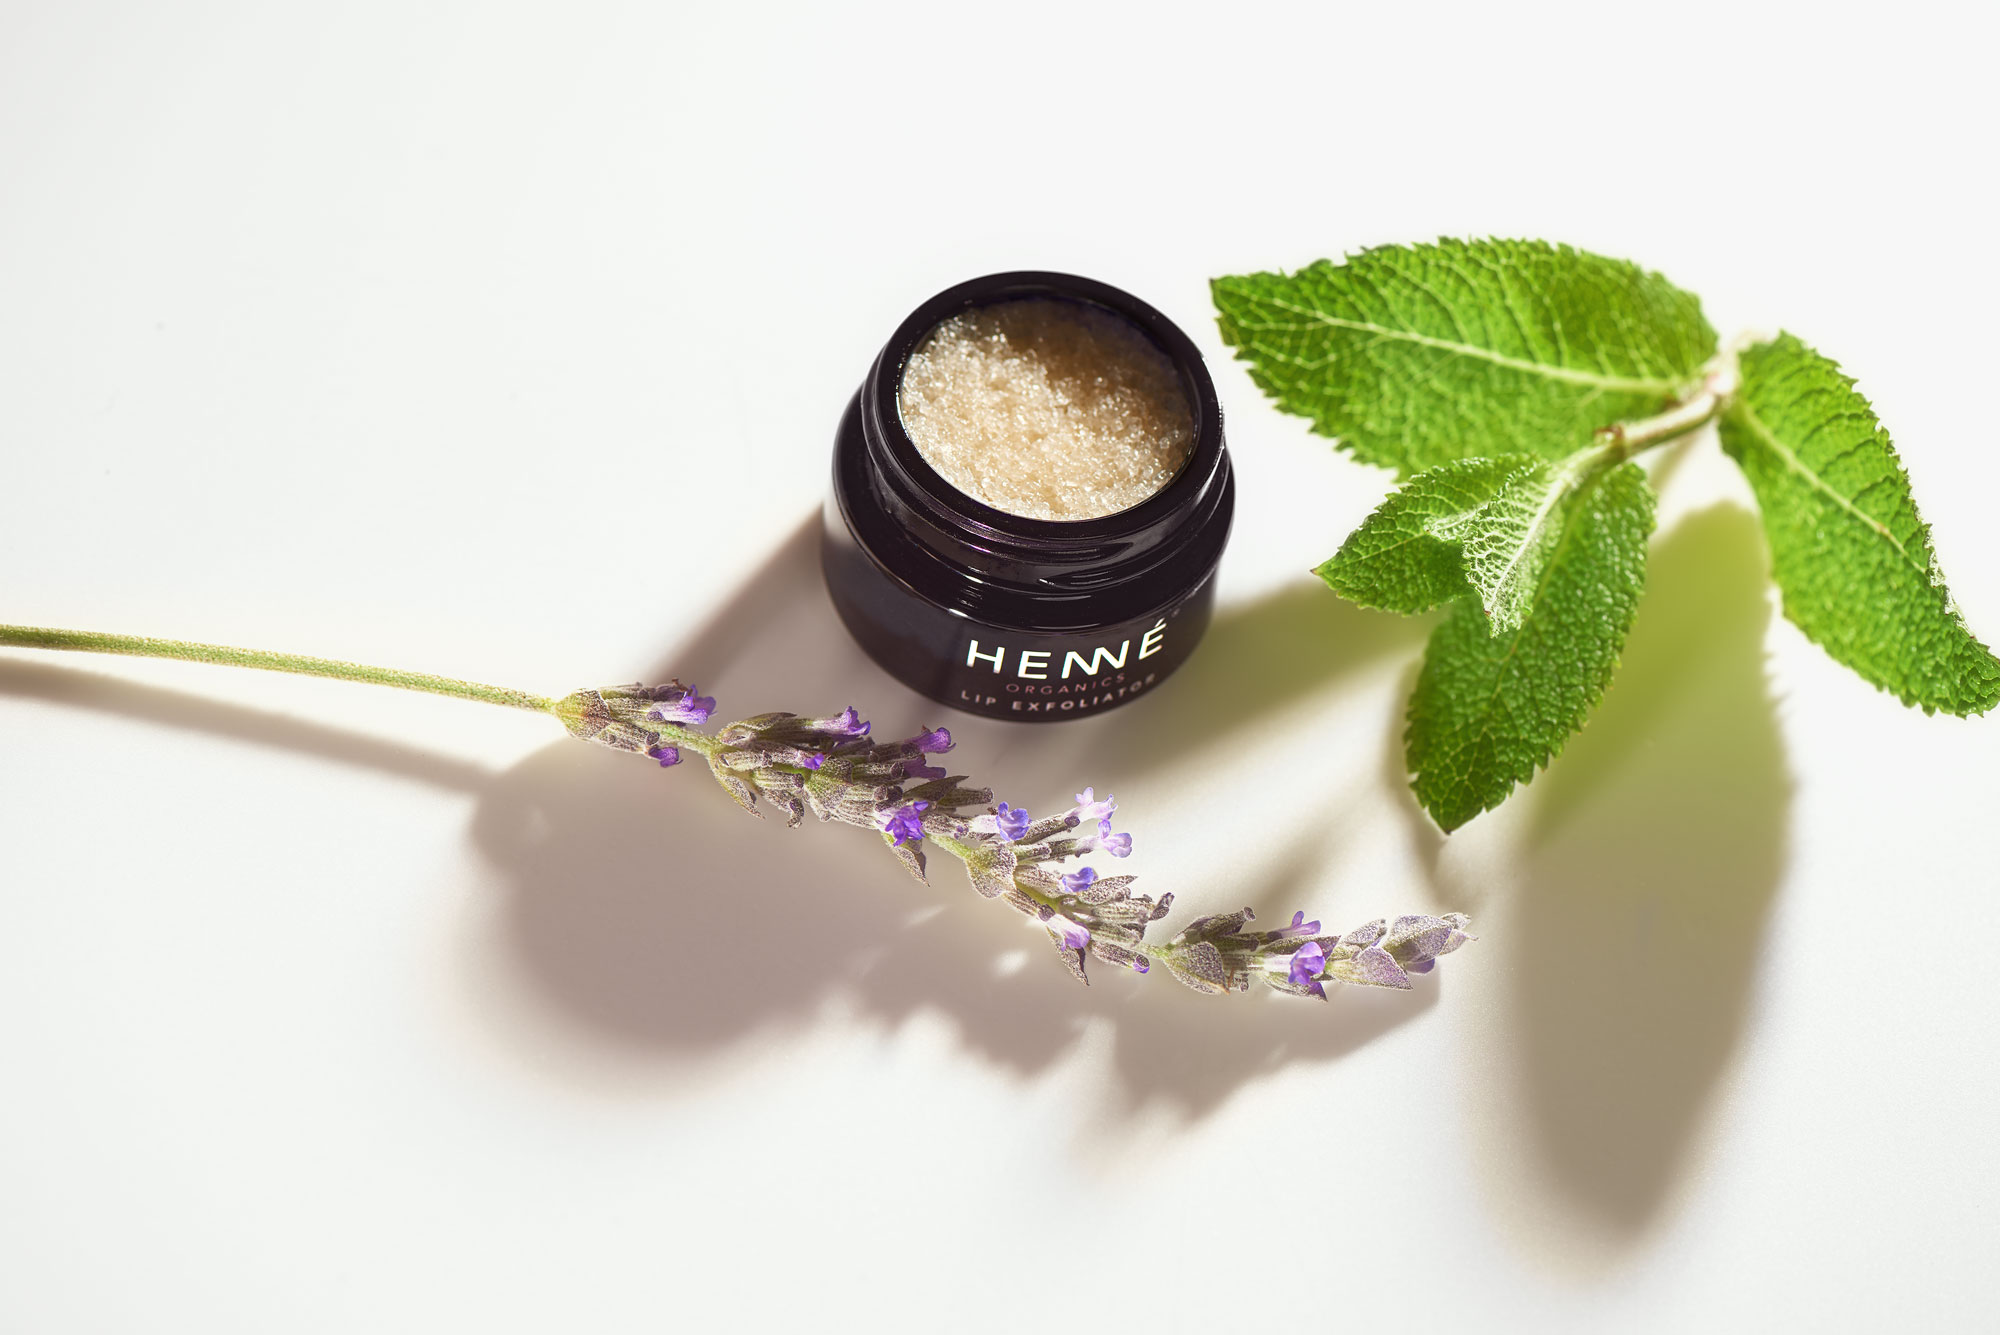 Lavender Mint lip exfoliator with lavender and mint